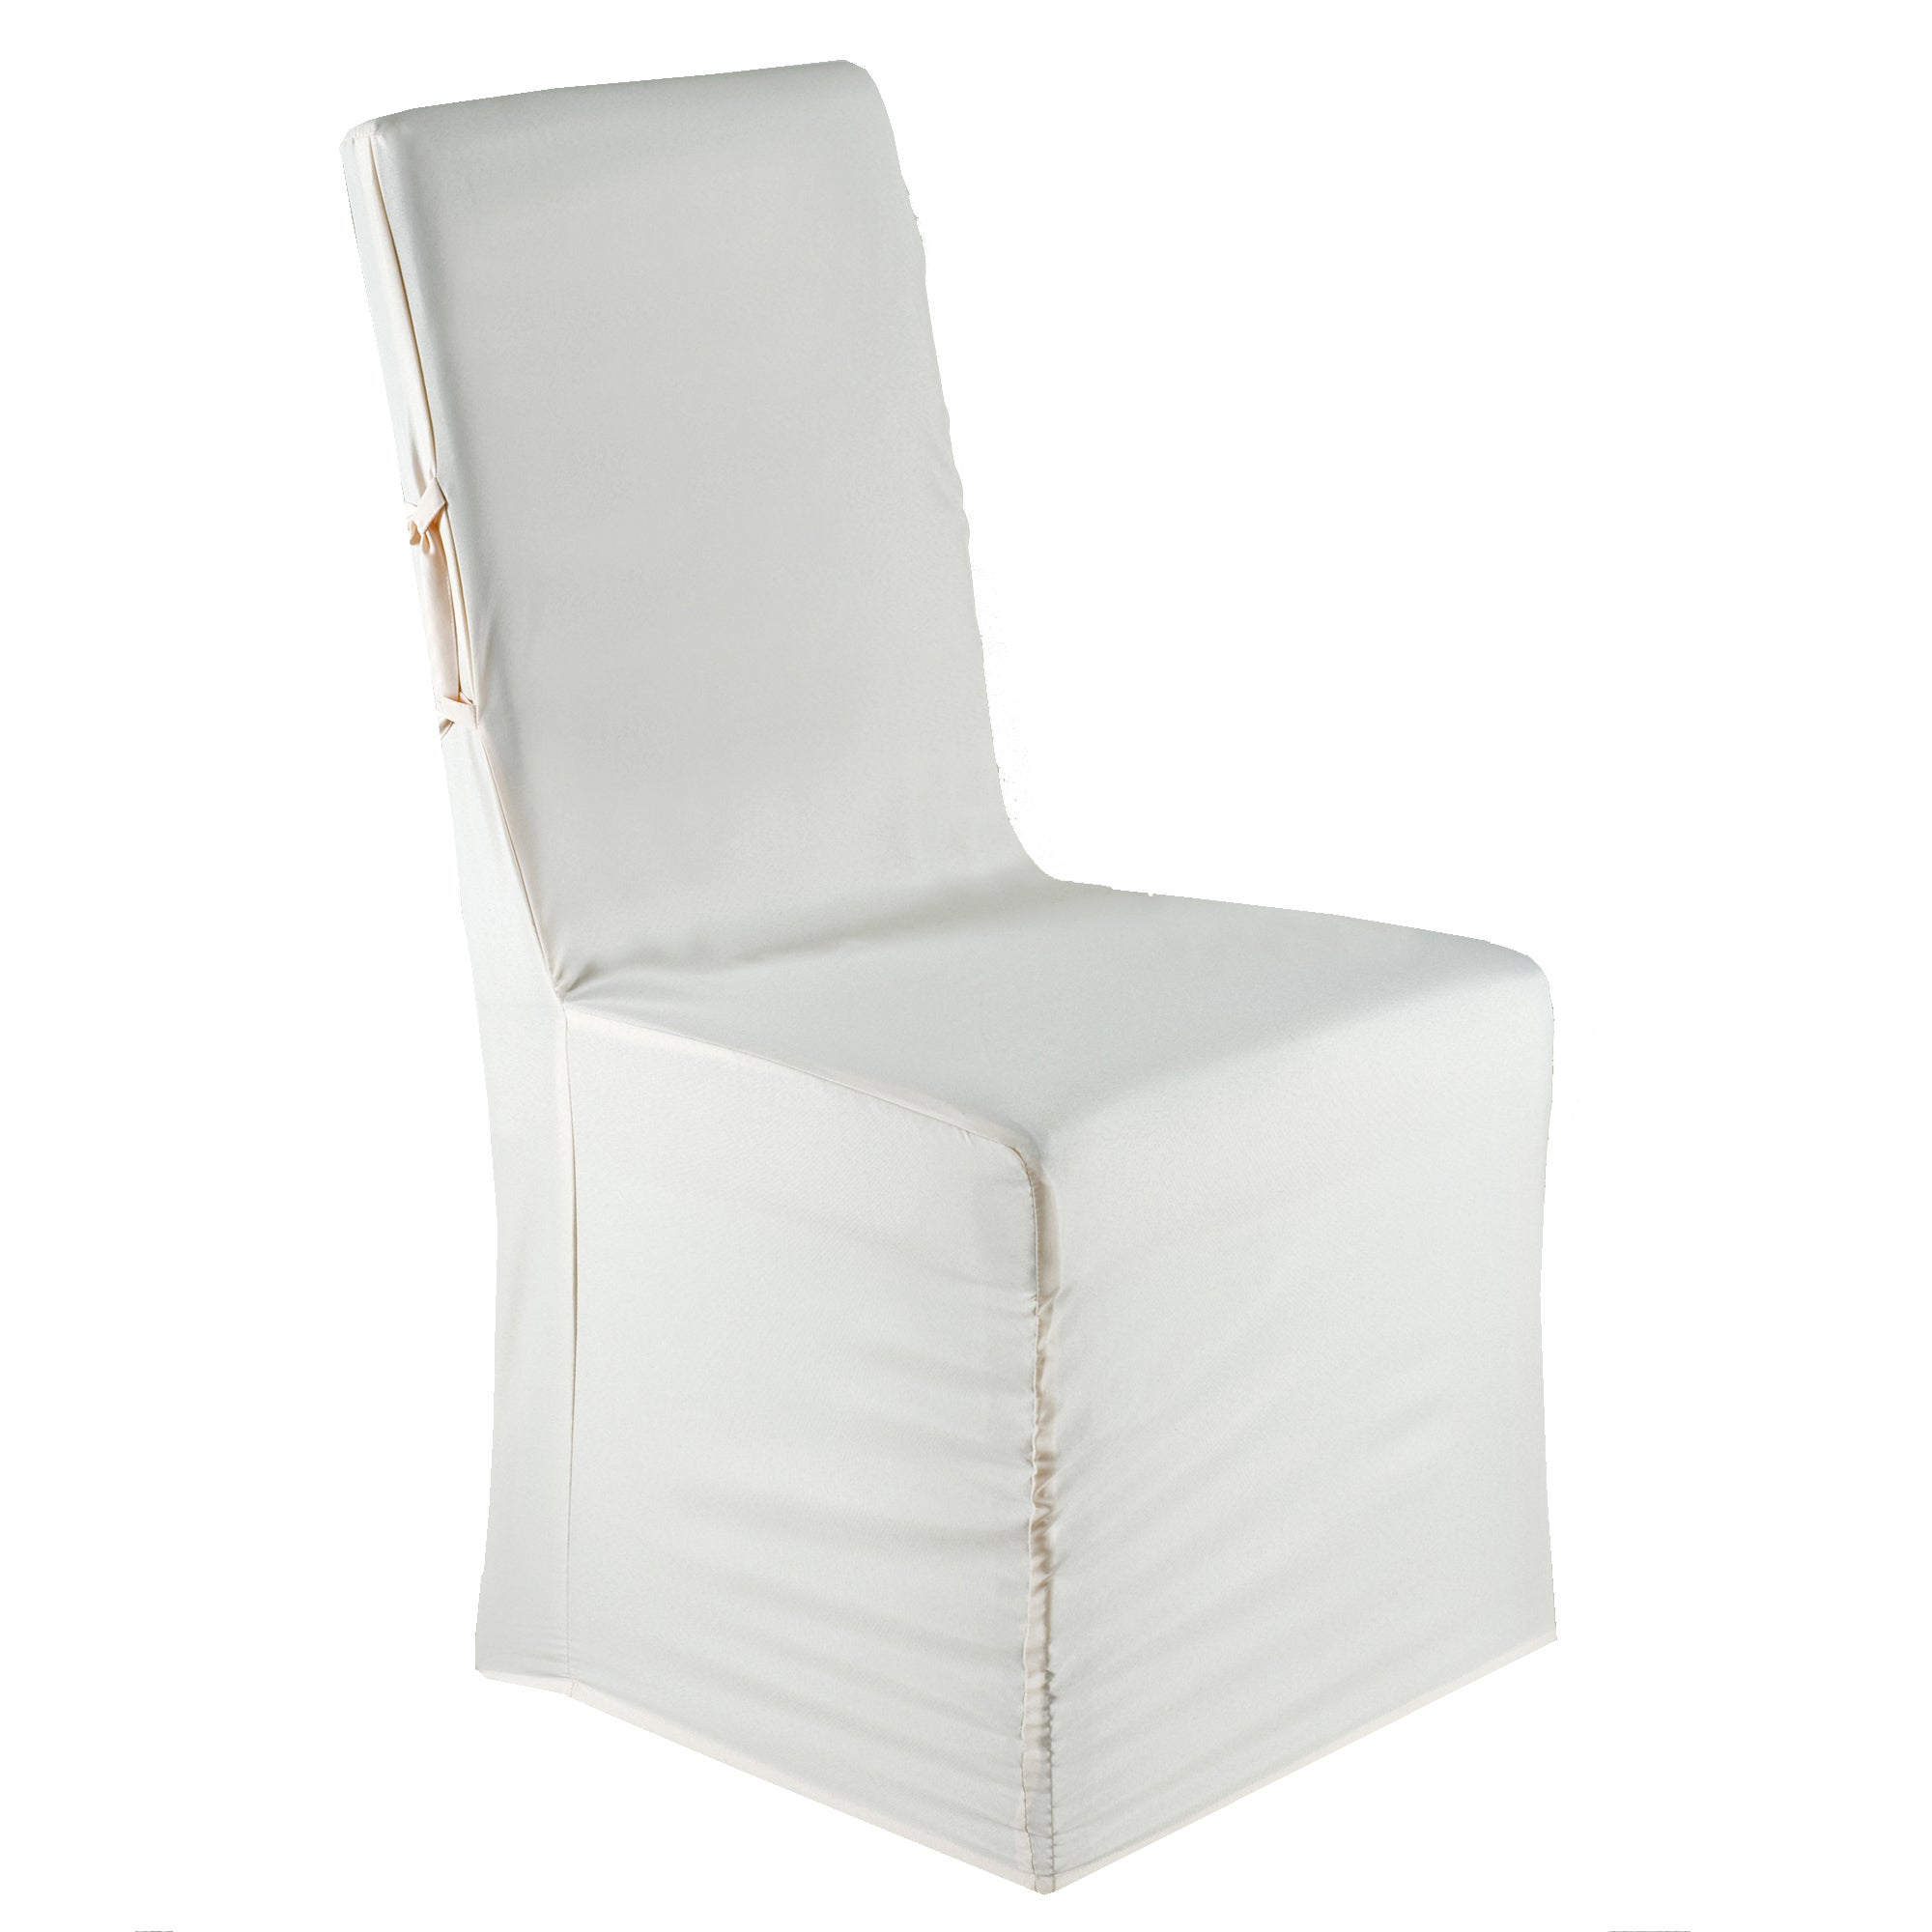 Pack of 2 Natural Chair Covers